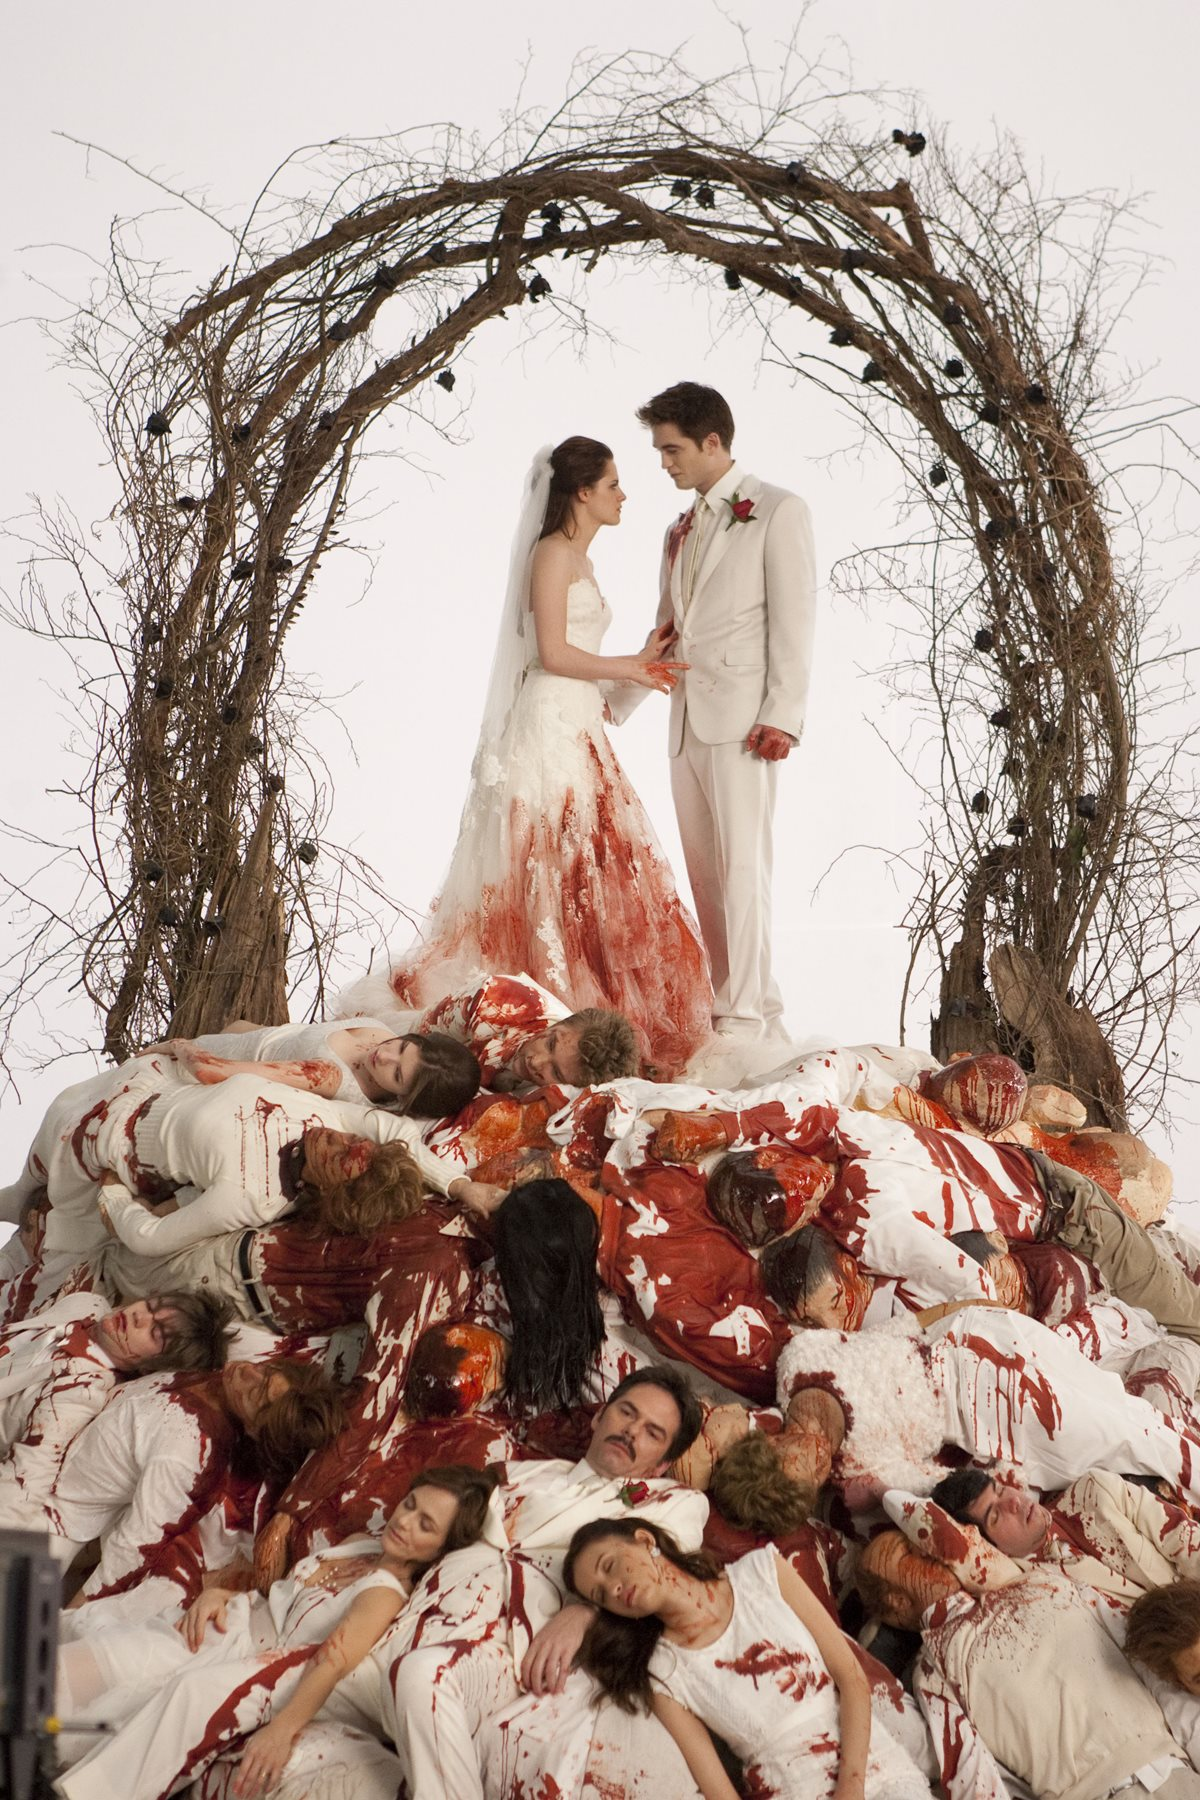 Bella Swan S Bloodstained Nightmare Wedding Dress And Veil